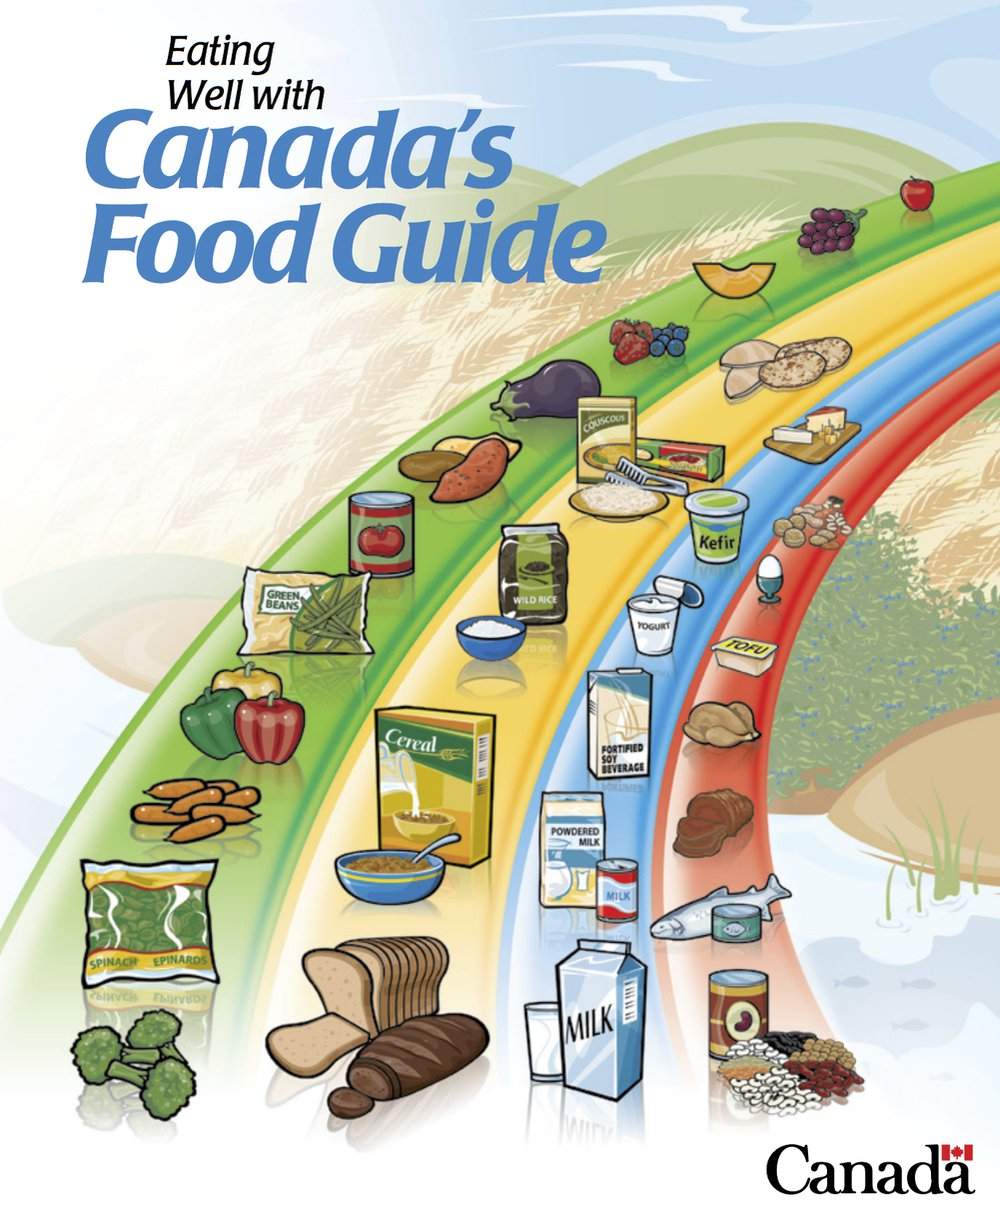 Canada's Food Guide 2007 - by Doug Cook RD